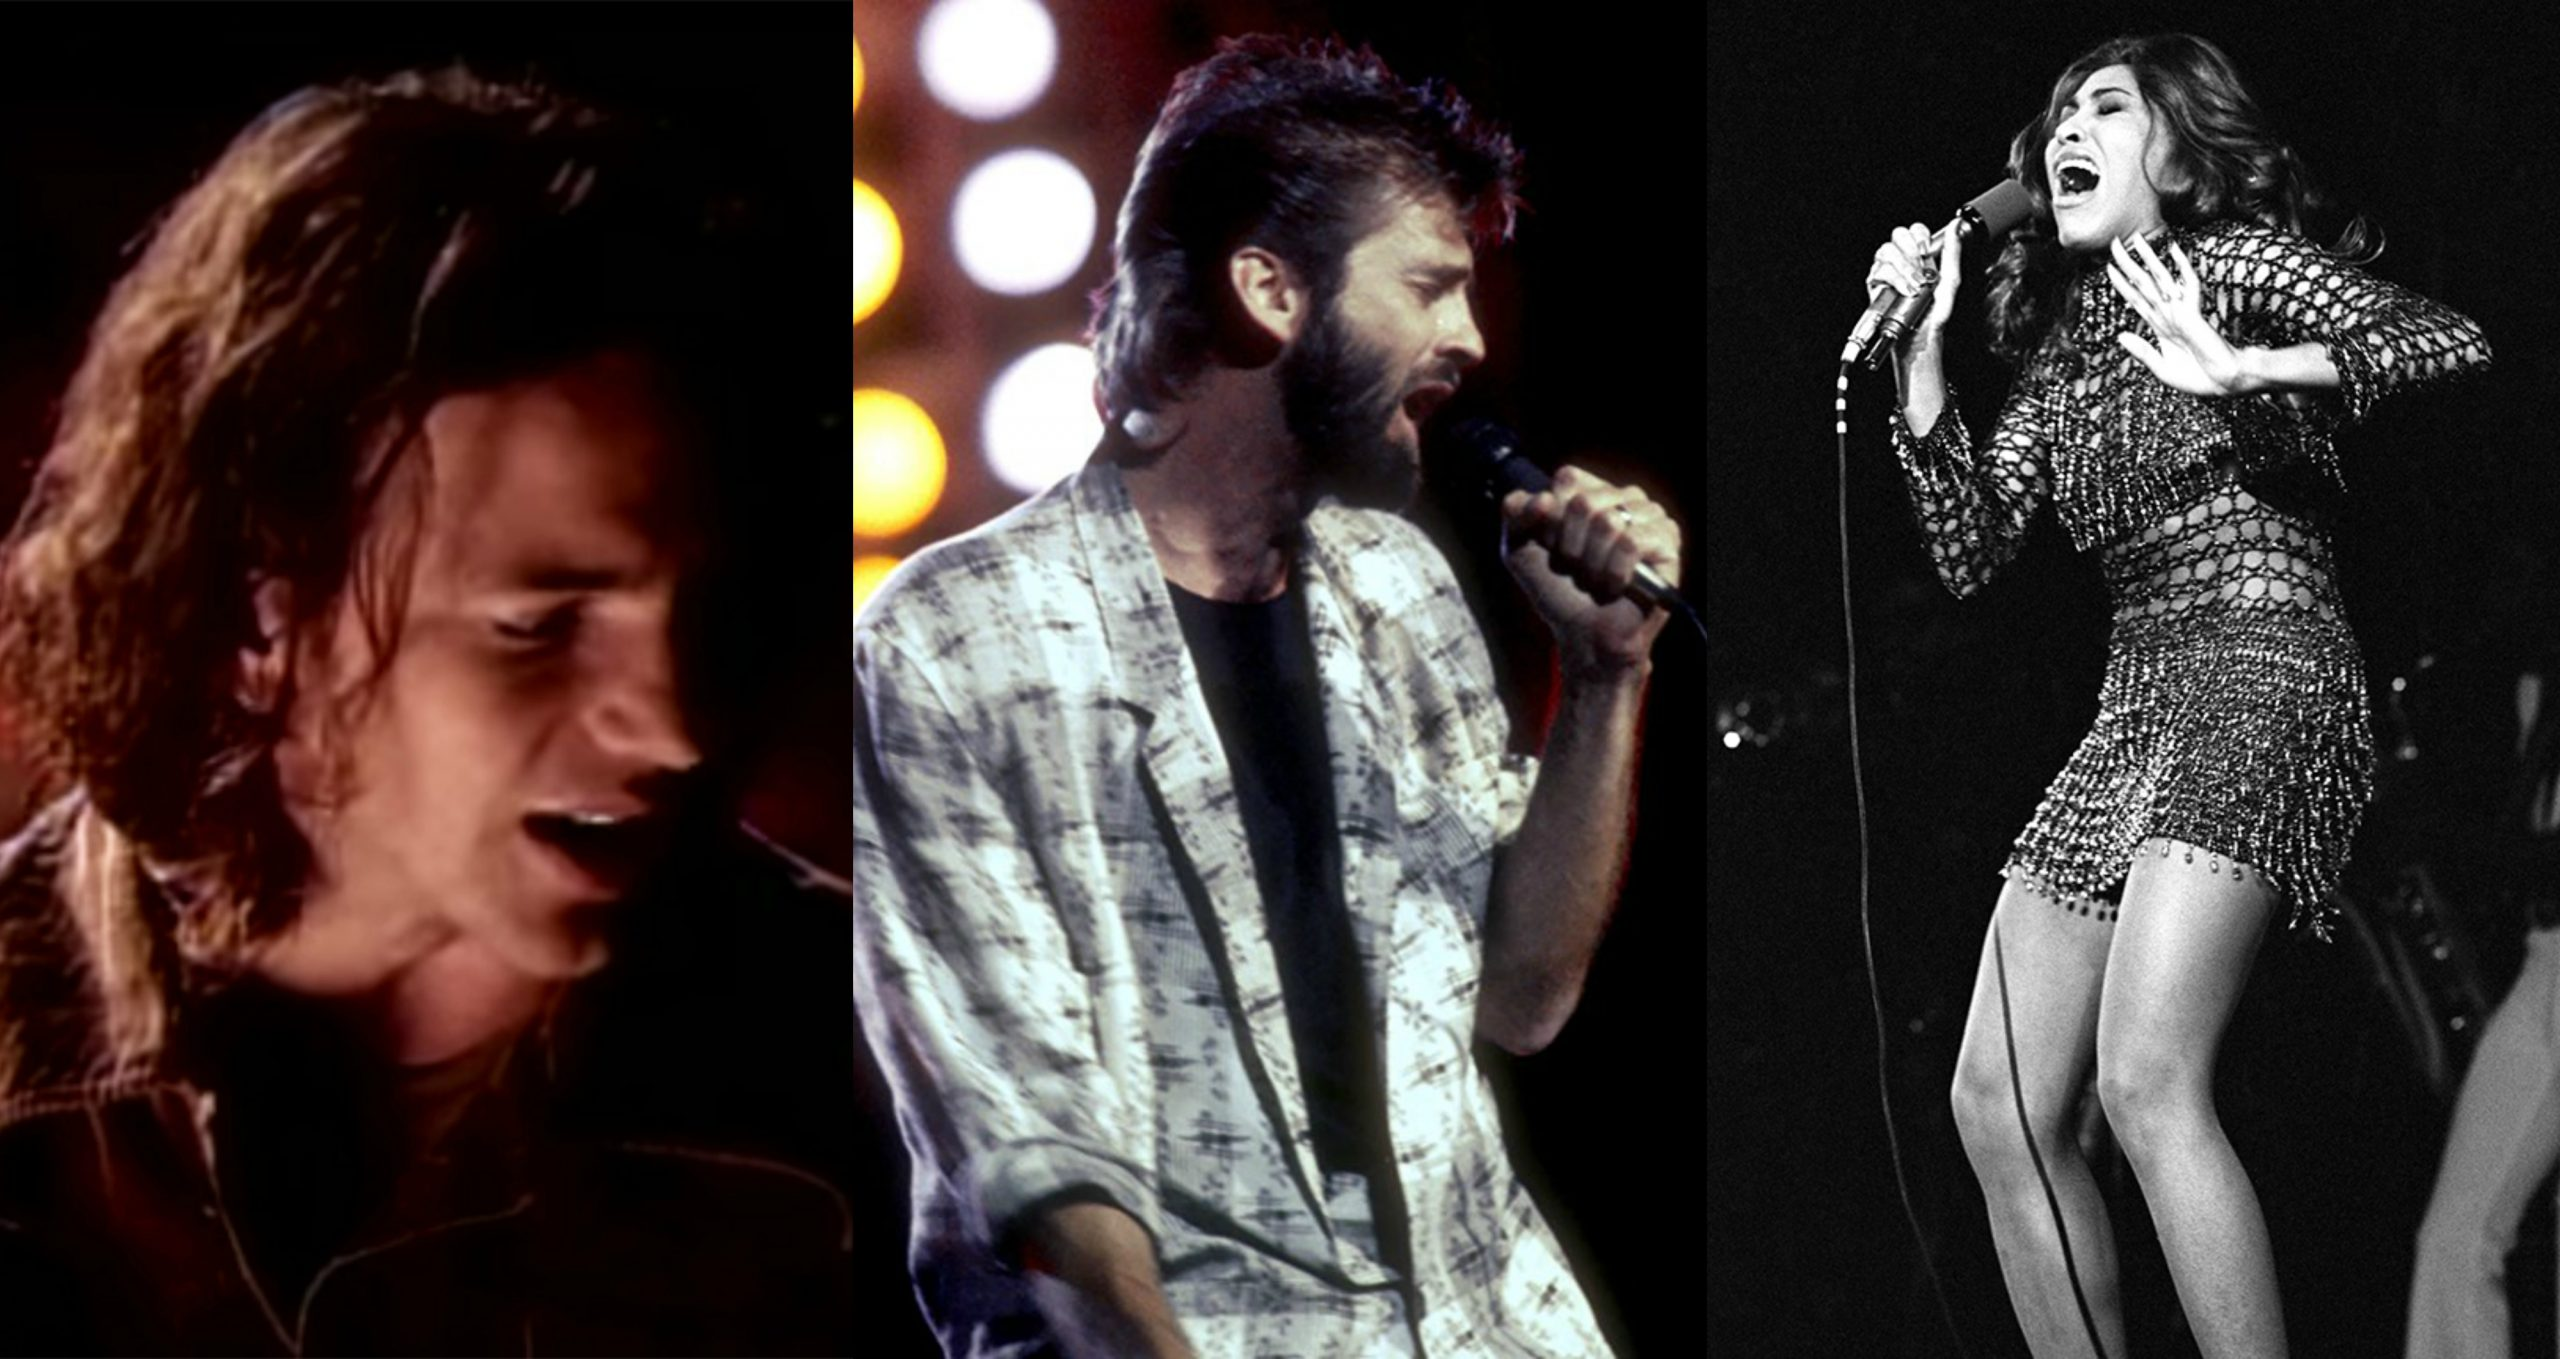 How would Pearl Jam's 'Jeremy' sound as a pop song? A lot like 'Footloose'.